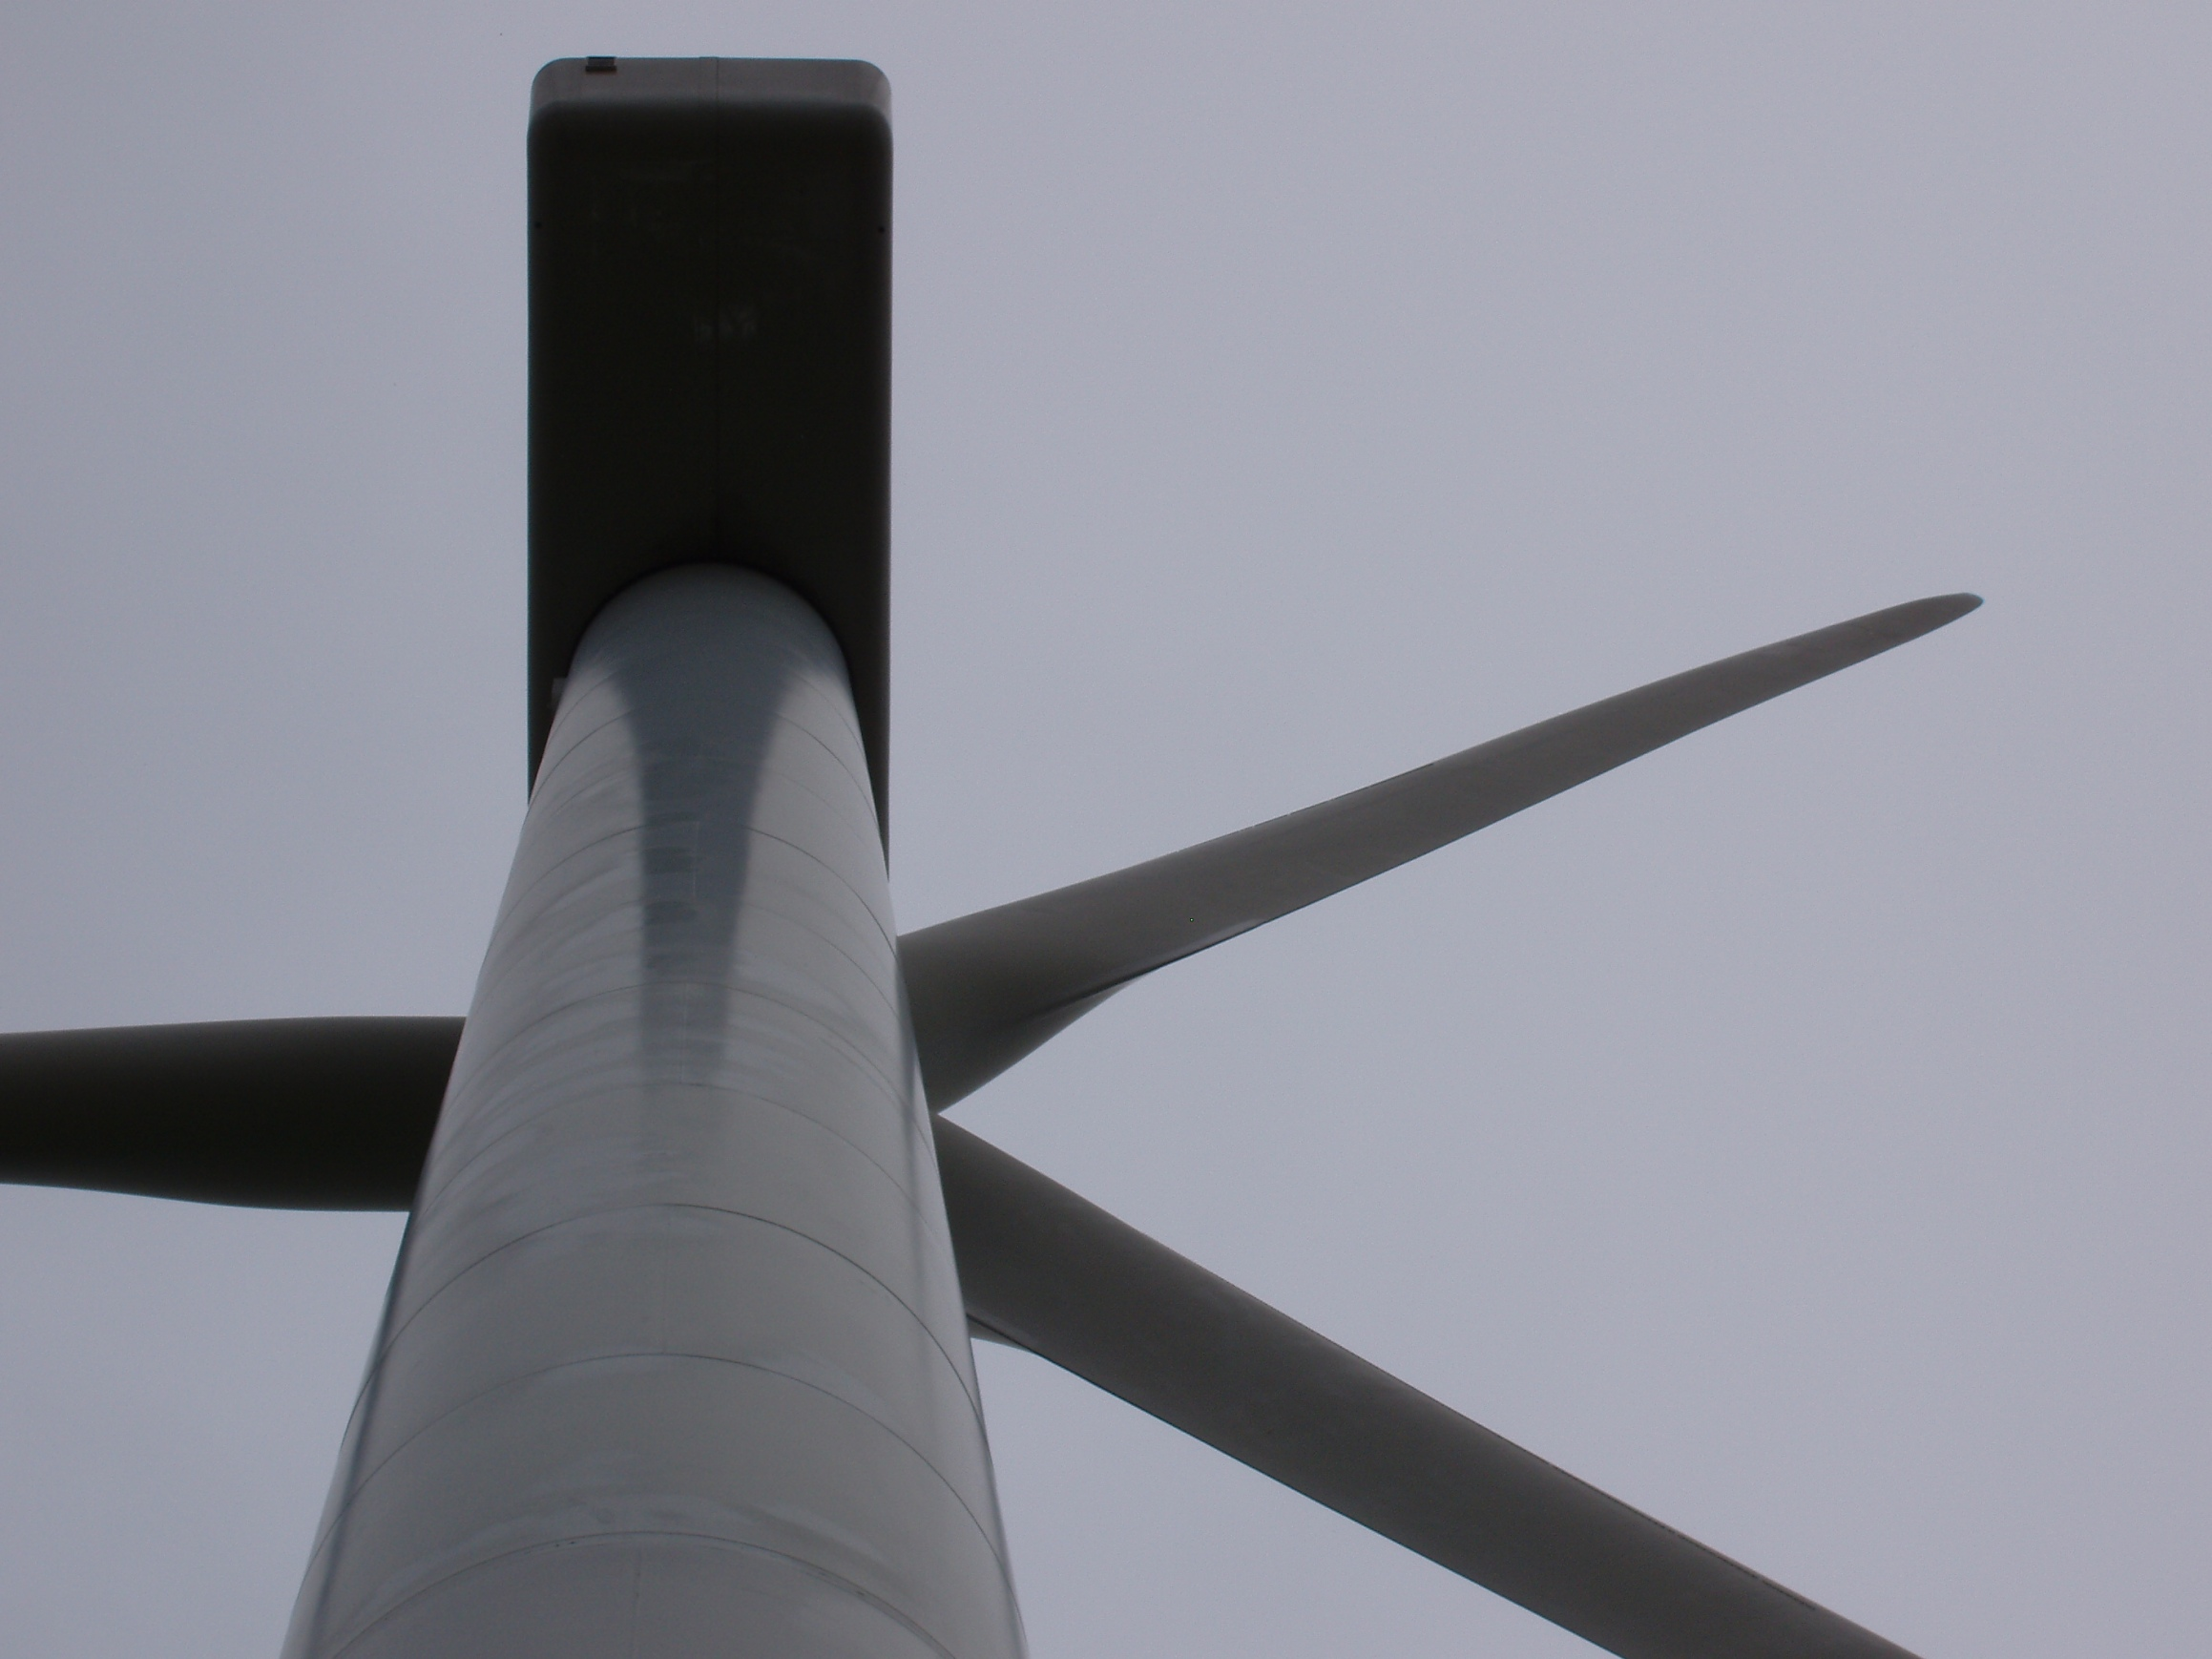 Up close and personal with a Pennsylvania wind turbine